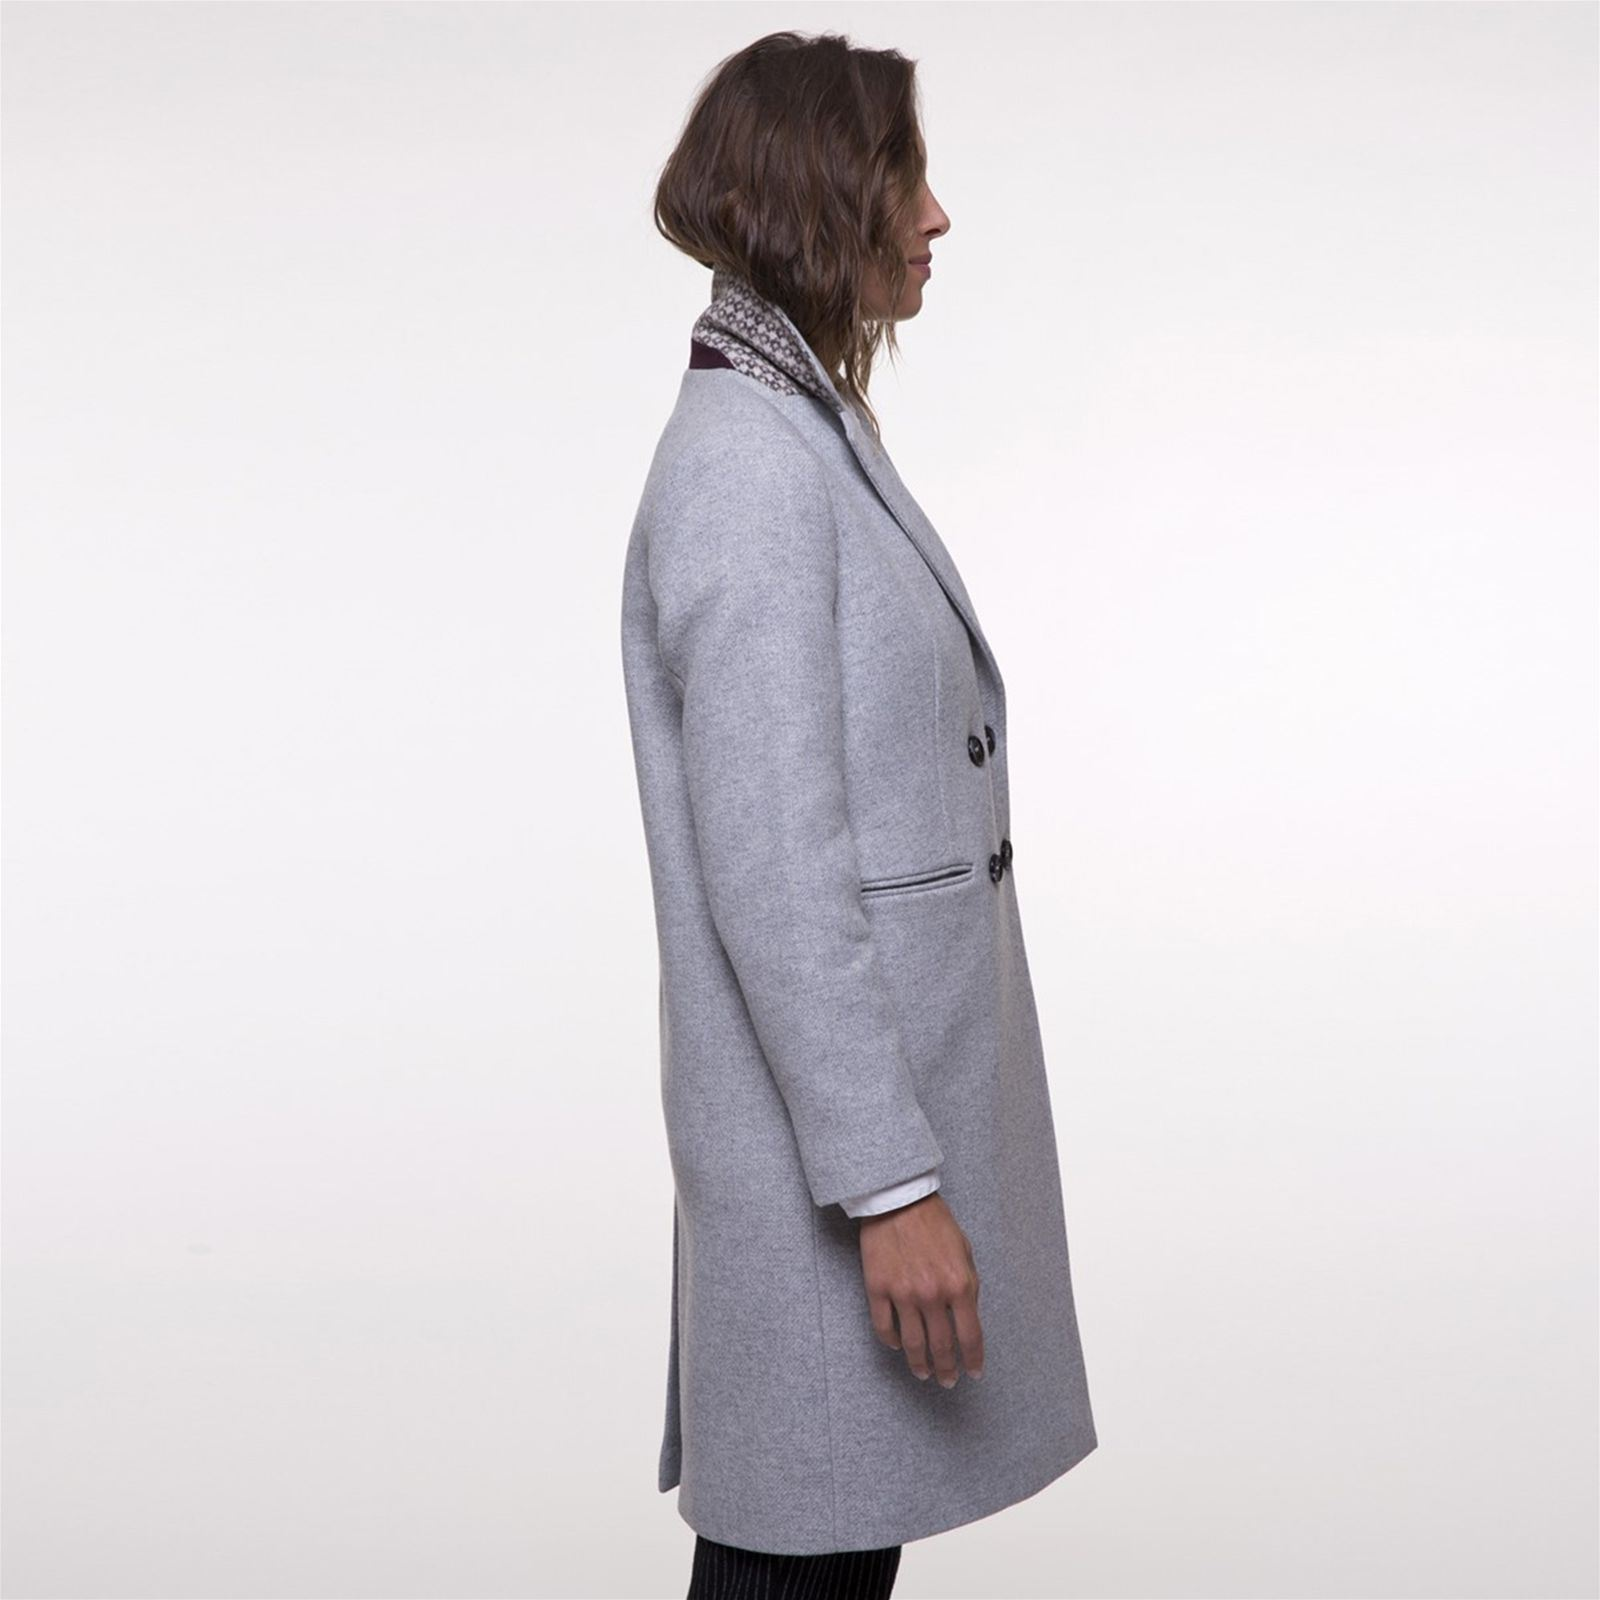 Clair Brandalley Manteau En Coat Mélangée Laine Trench And Gris Uw7q4ng 1ed60948c56